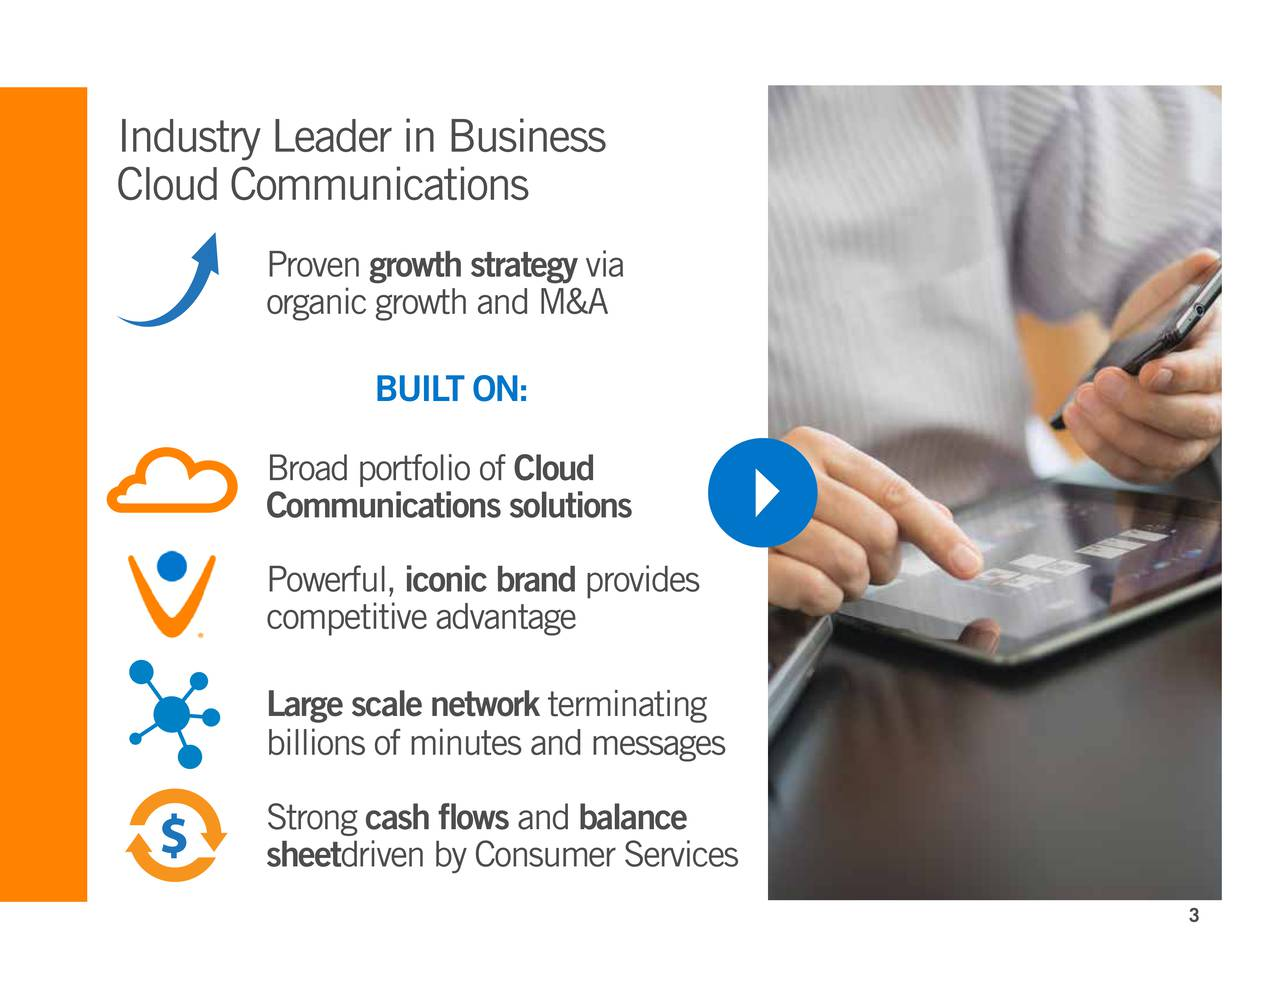 Cloud Communications Provengrowth strategy via organic growth and M&A BUILT ON: Broad portfolio of Cloud Communications solutions Powerful,iconic brand provides competitive advantage Large scale network terminating billions of minutes and messages Strongcash flows and balance sheetdriven by Consumer Services 3